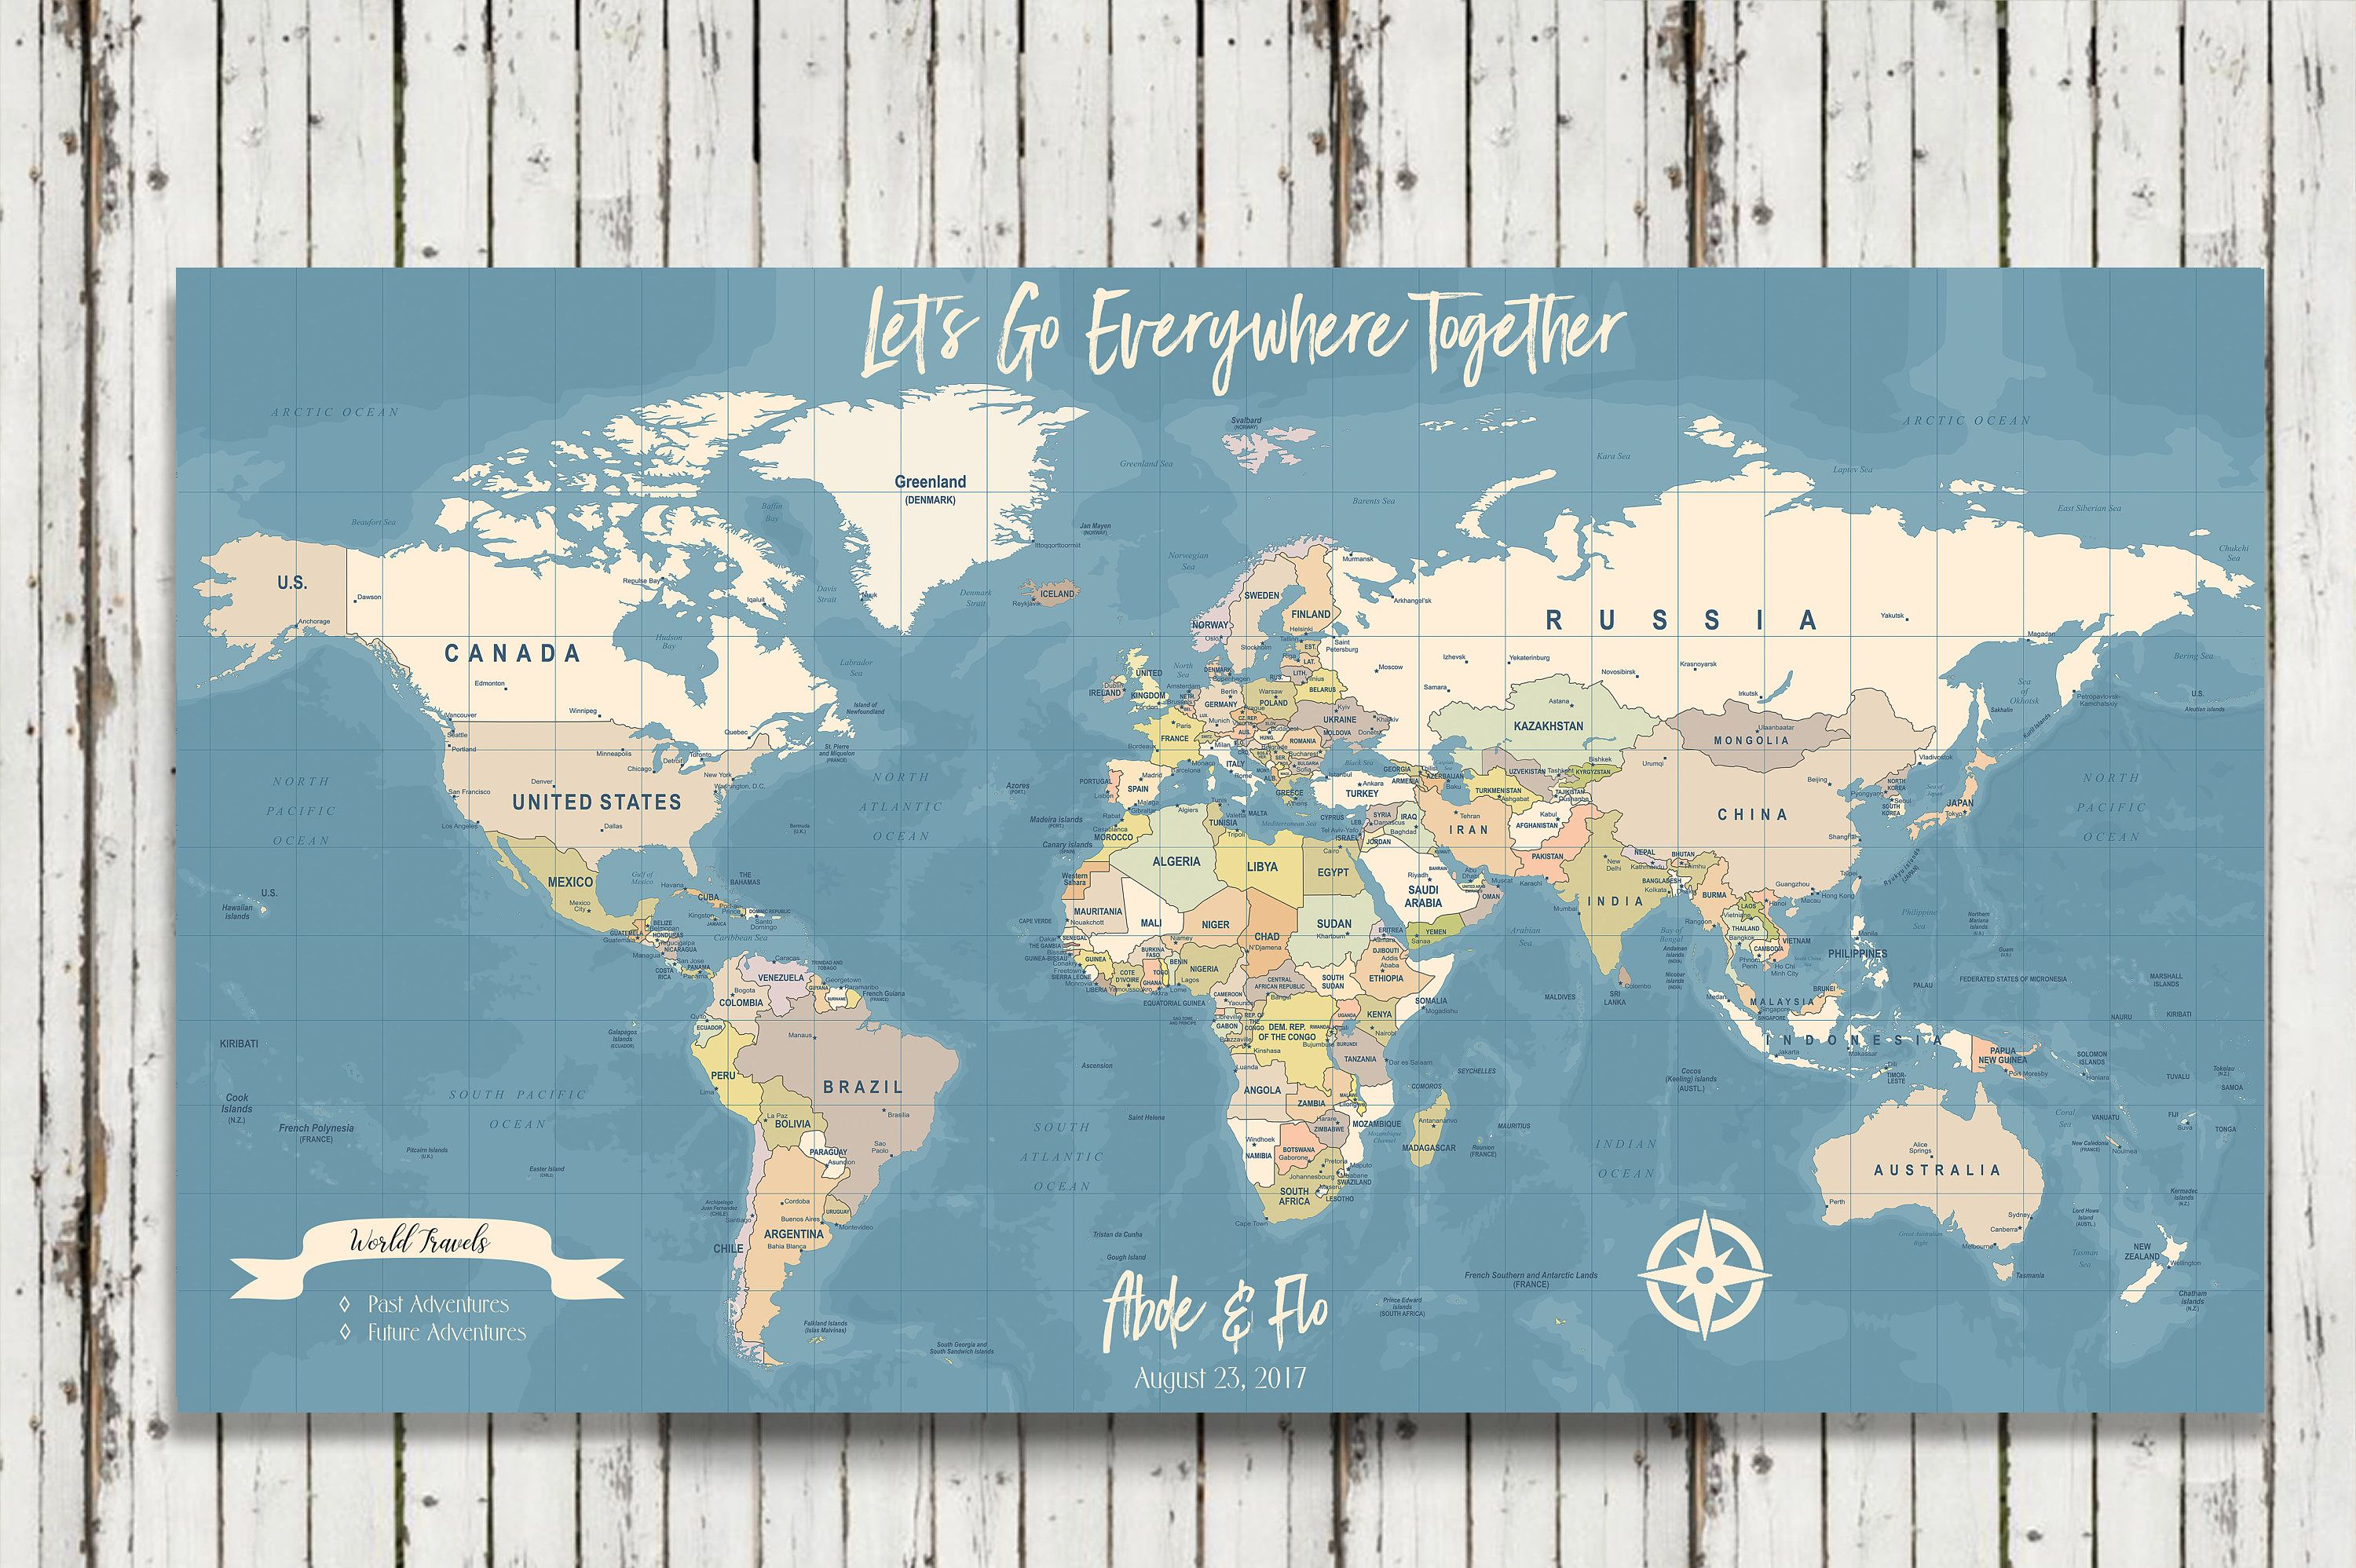 World travel map map your travels canvas pushpin map husband gift world travel map map your travels canvas pushpin map husband gift our travels map personalized travel map personalized push pin map gumiabroncs Image collections